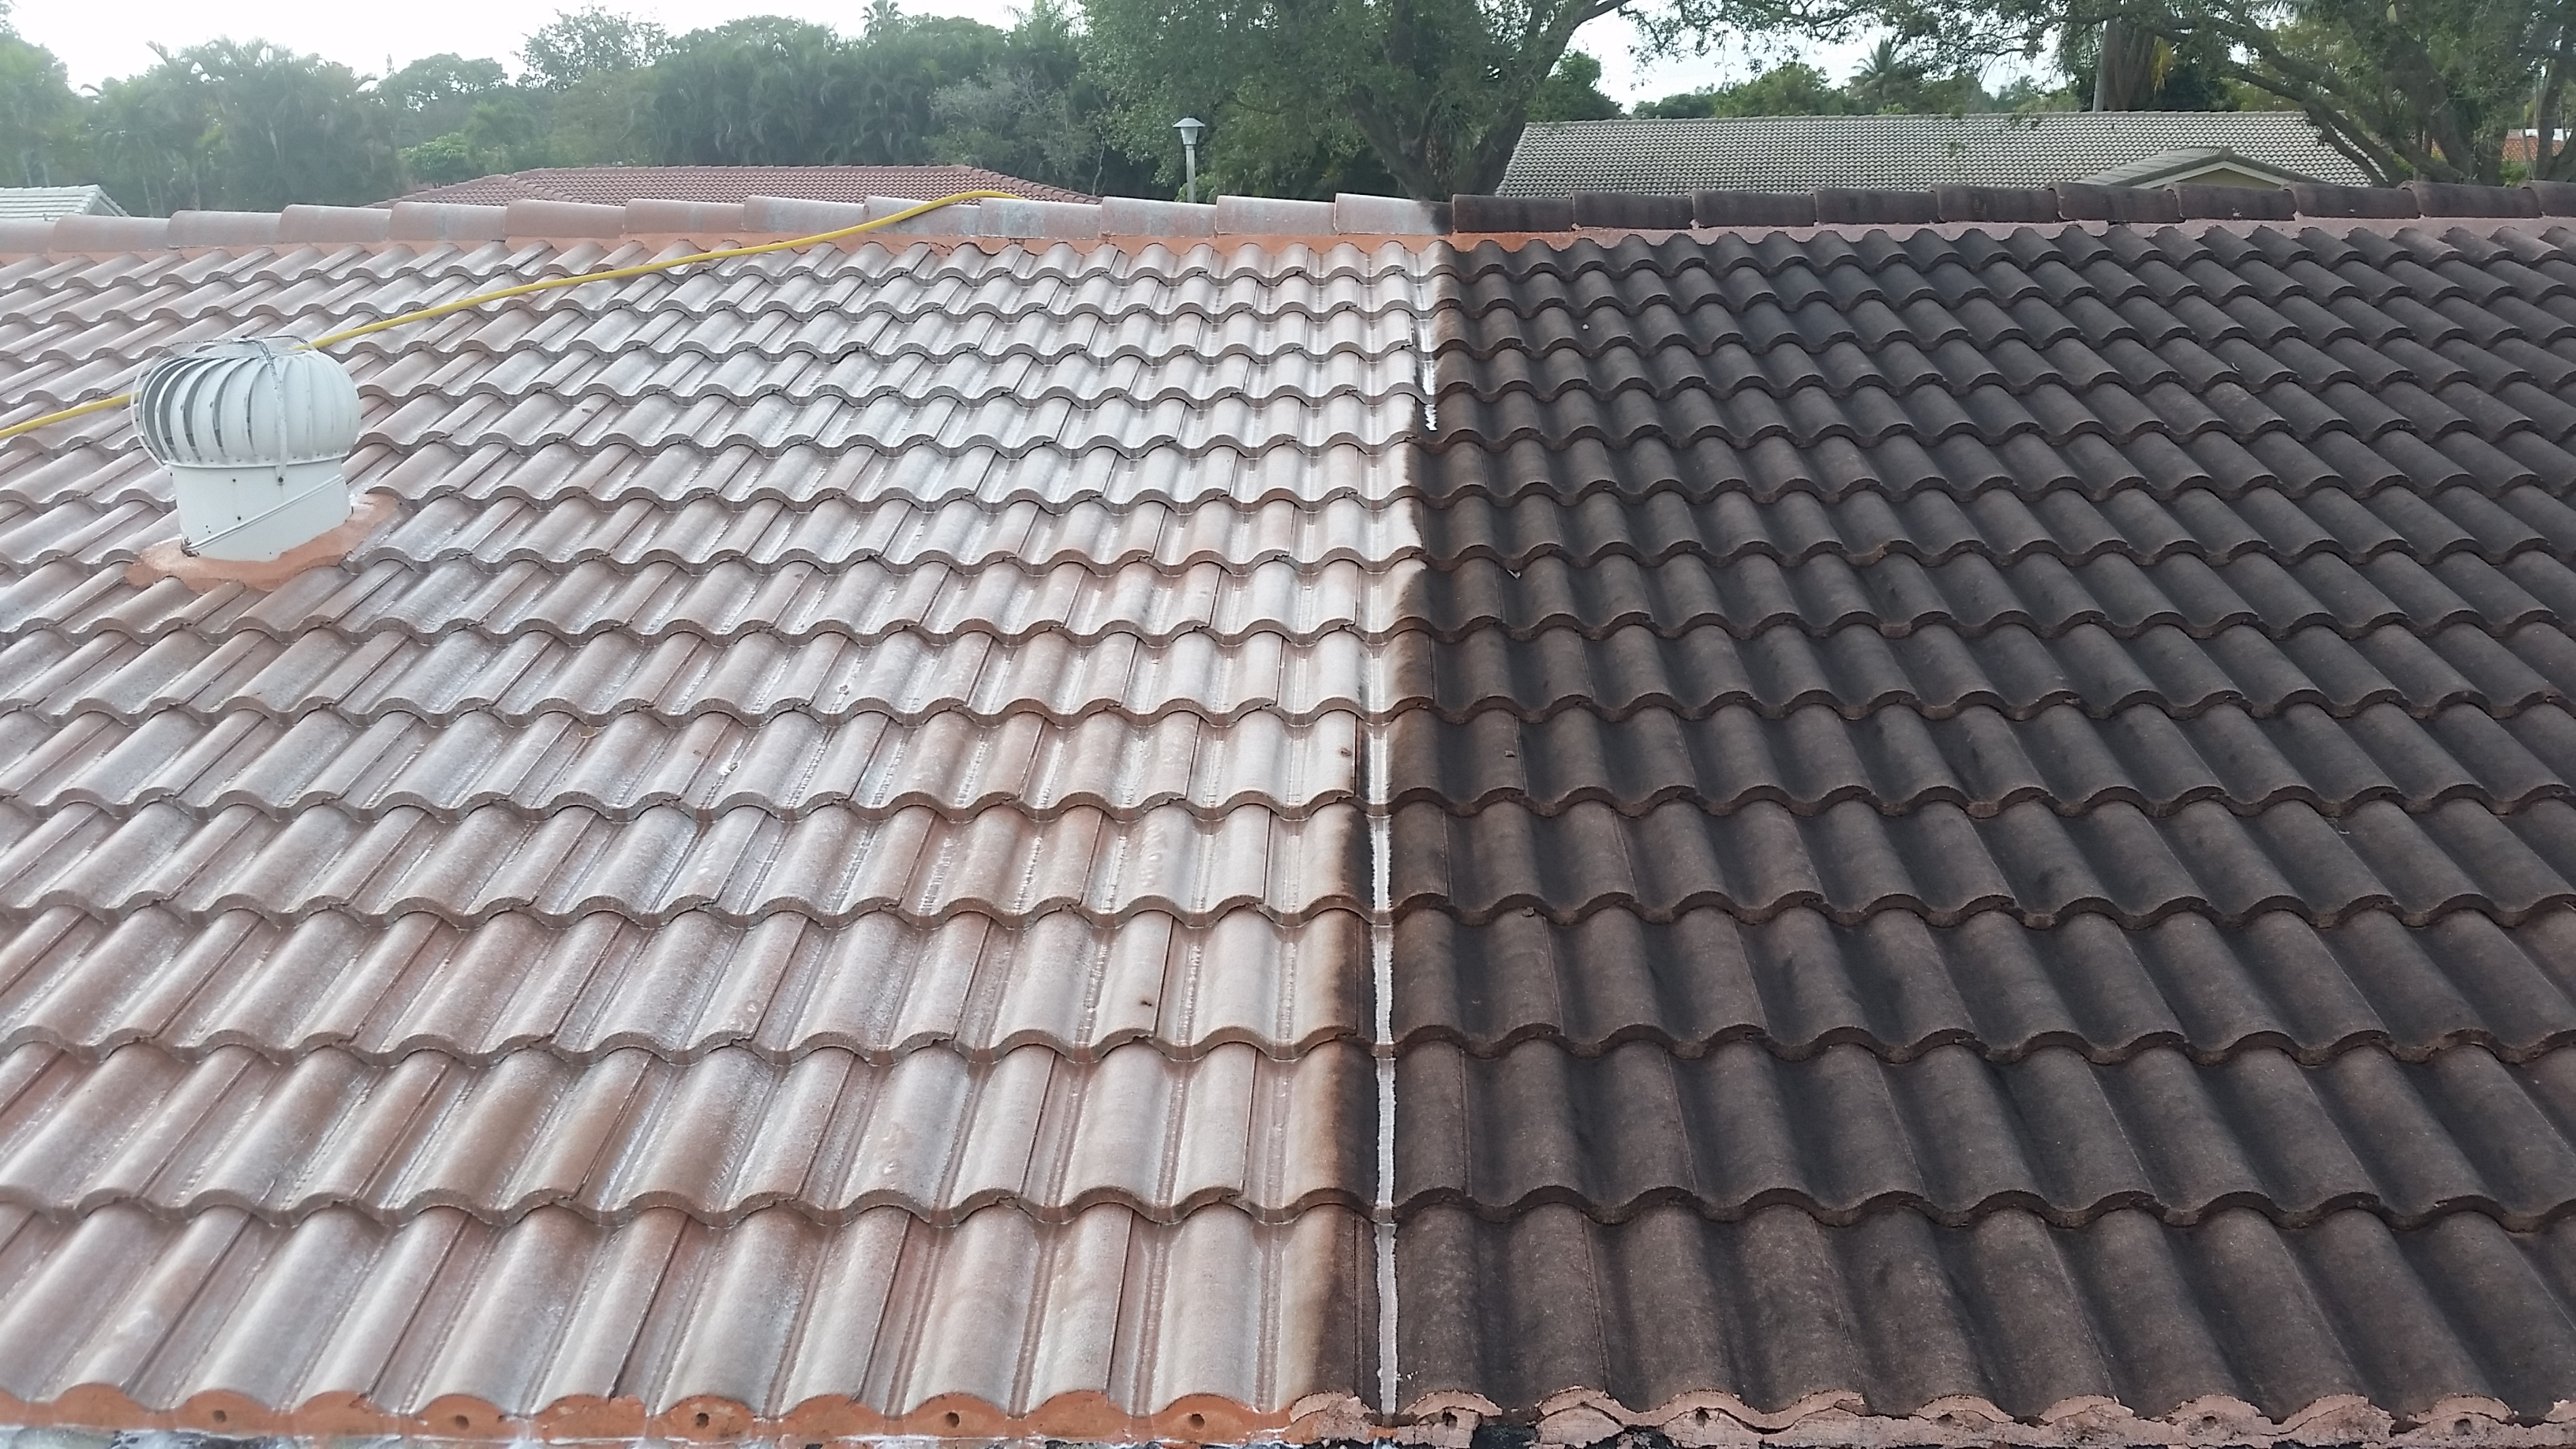 Pressure Cleaning, Roof Cleaning, Chemical Cleaning, Power Washing ...